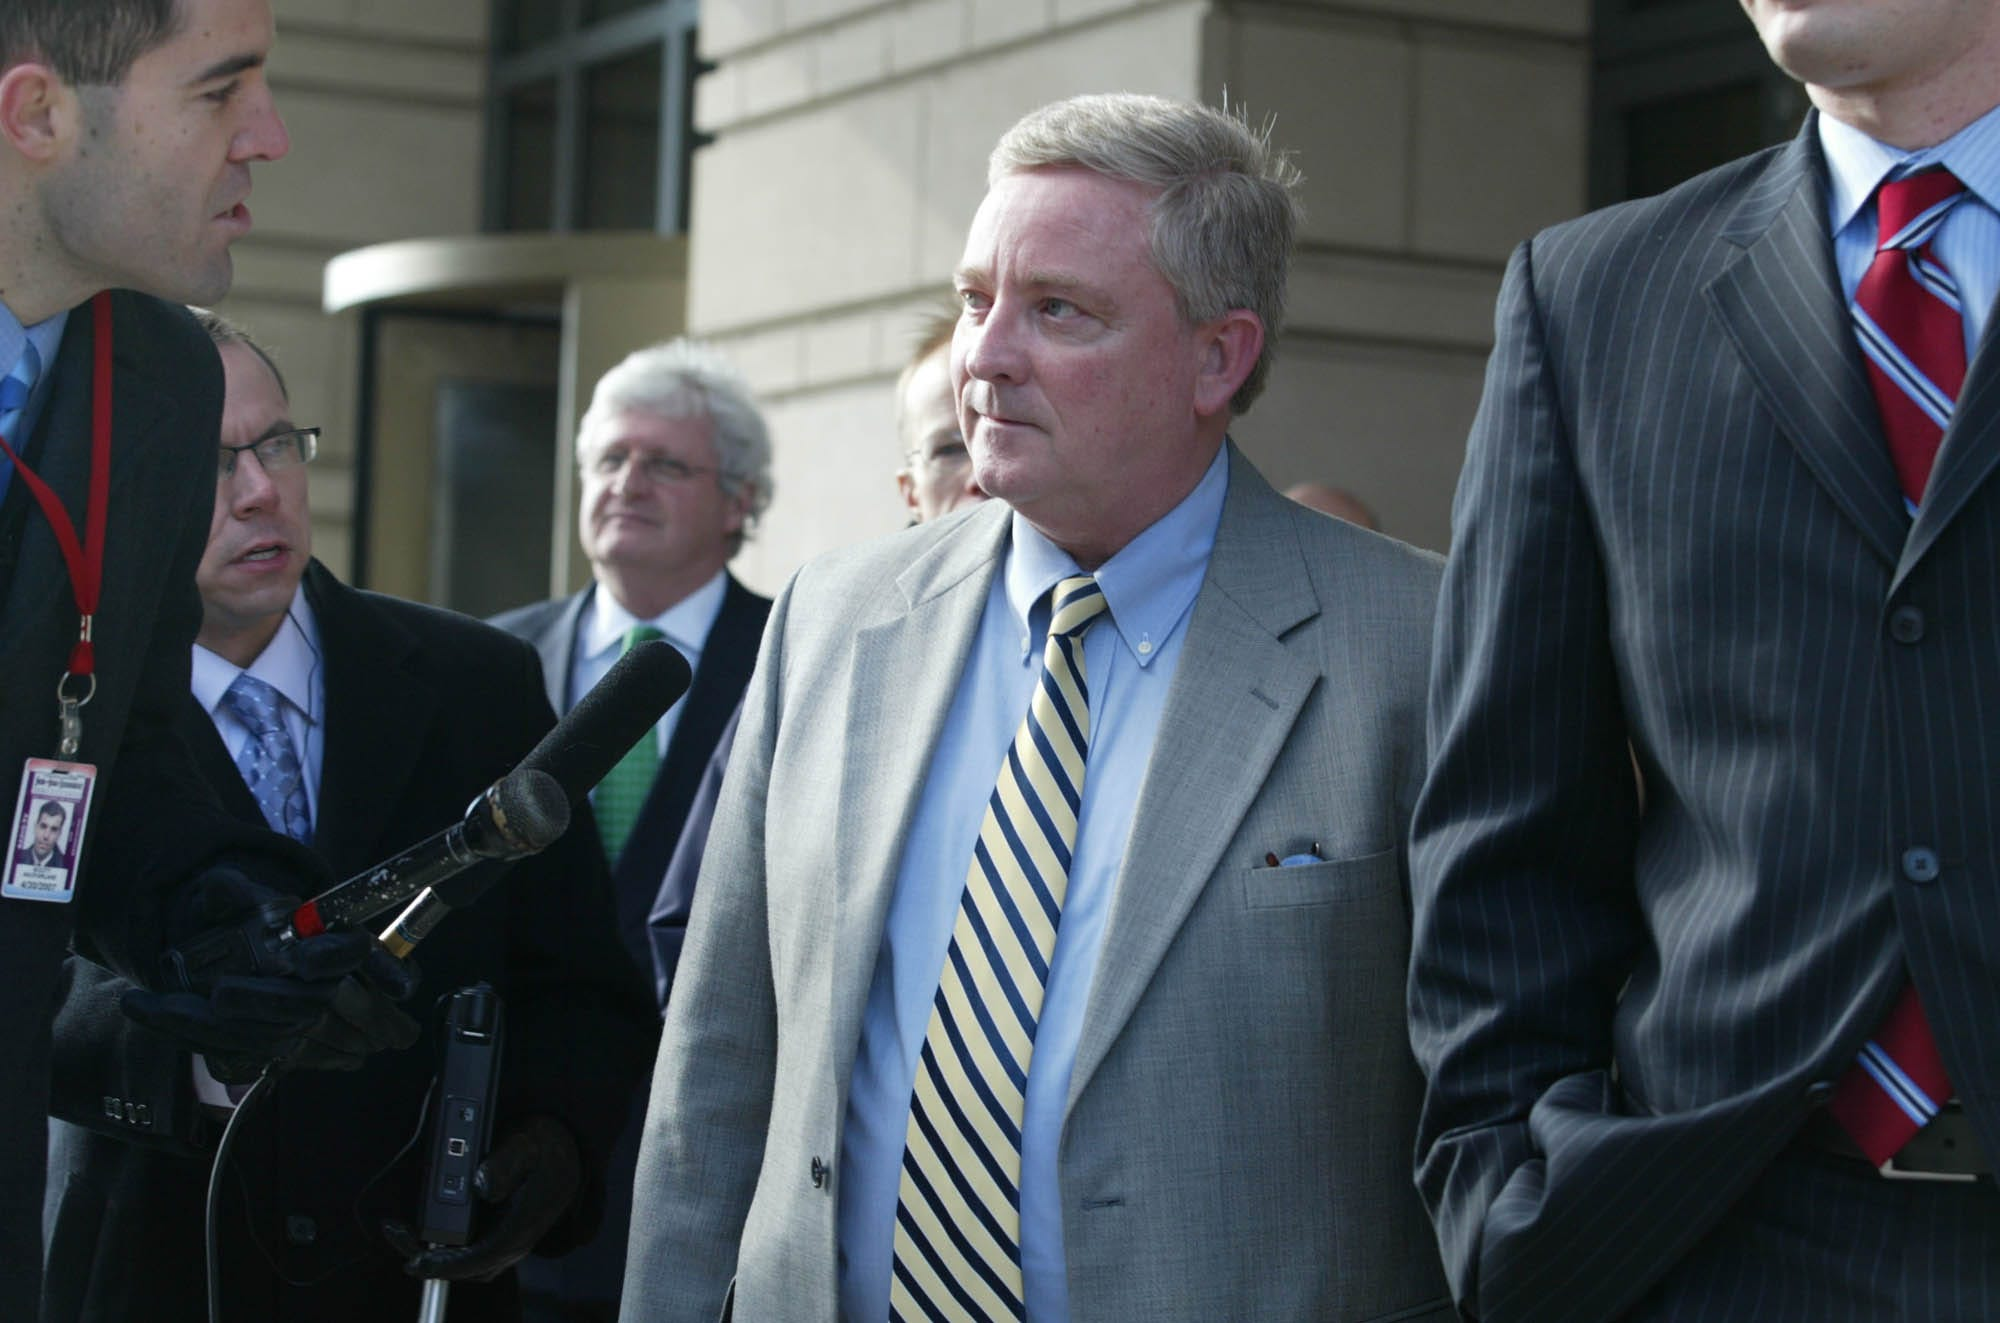 Former Rep. Bob Ney, R-Ohio, enters U.S. District Court  in Washington on Wednesday, Jan. 18, 2007, to be sentenced after being convicted of accepting free trips, meals, sporting event tickets and other gifts in the Jack Abramoff congressional lobbyist scandal.